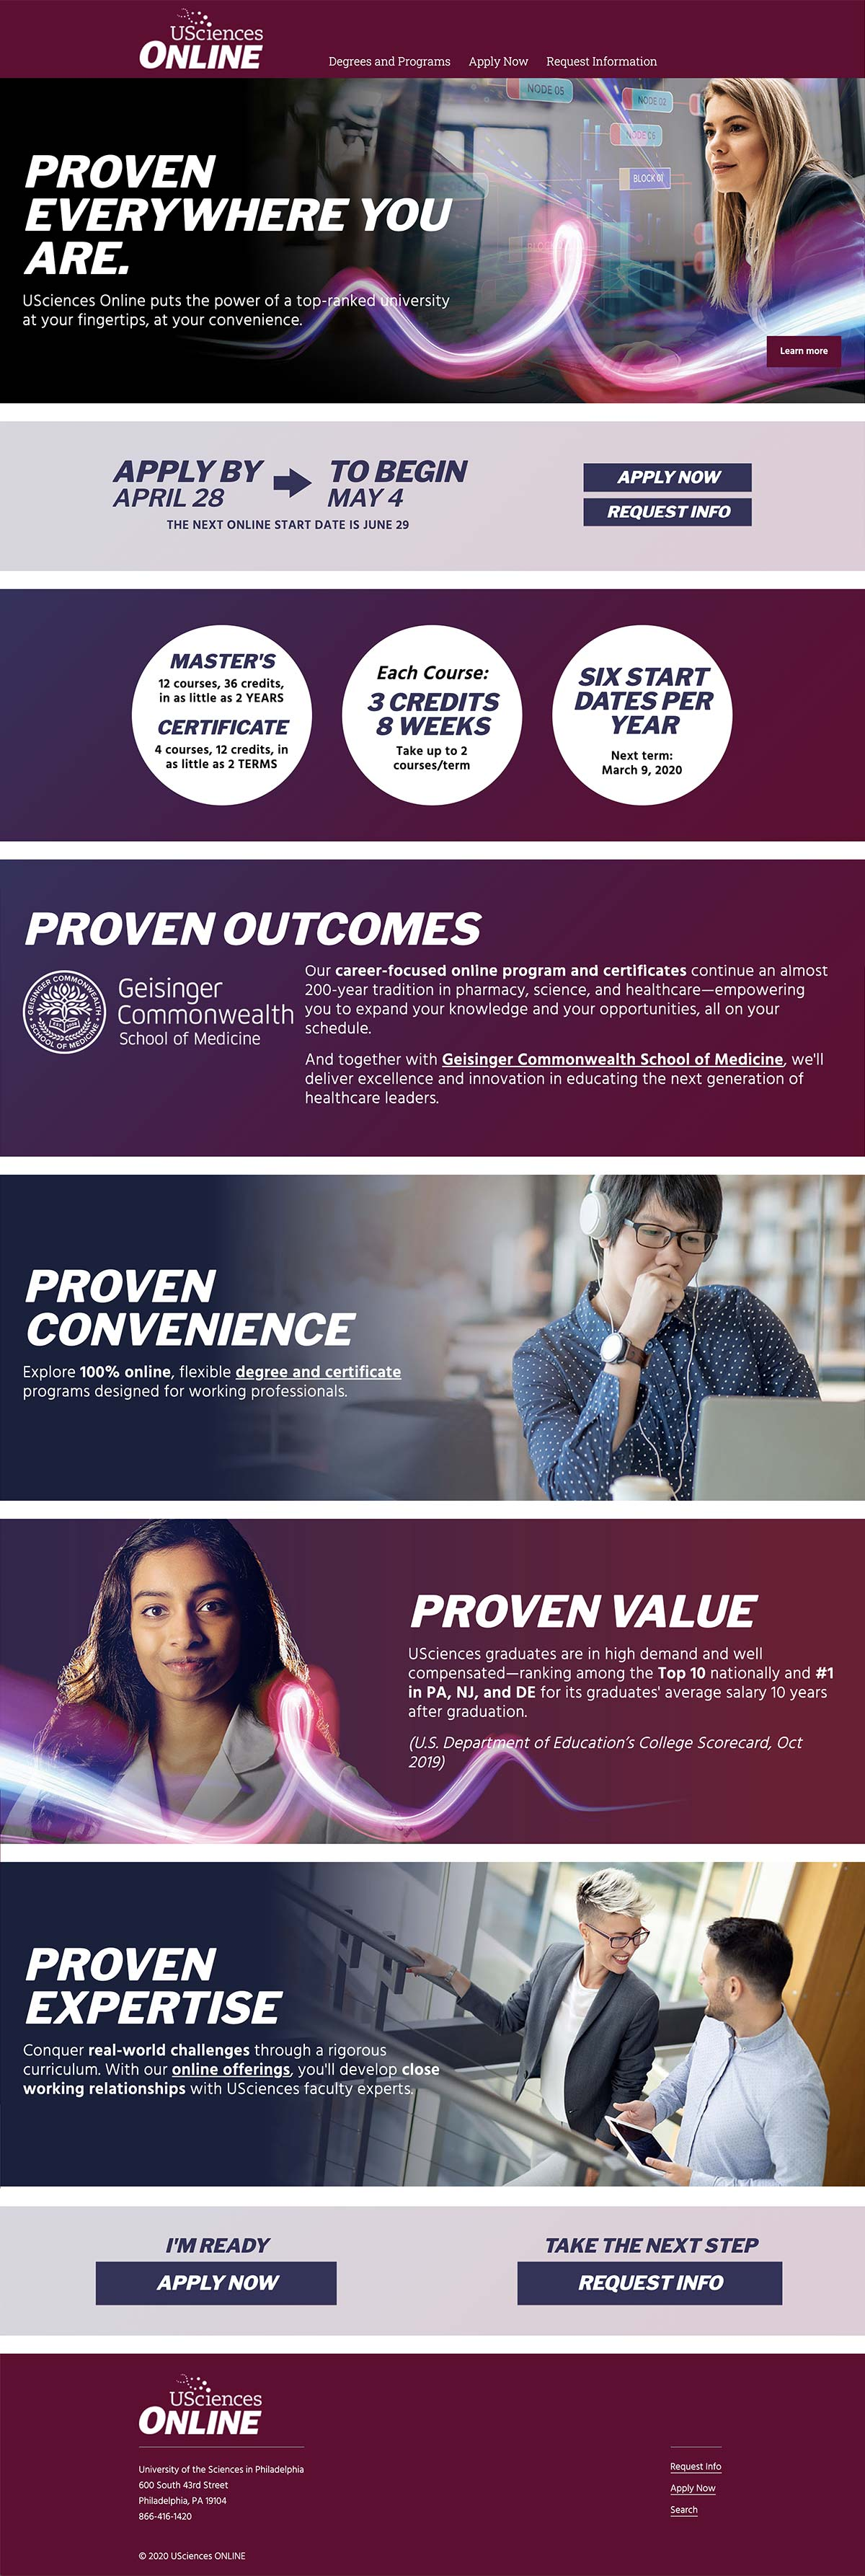 USciences Online homepage